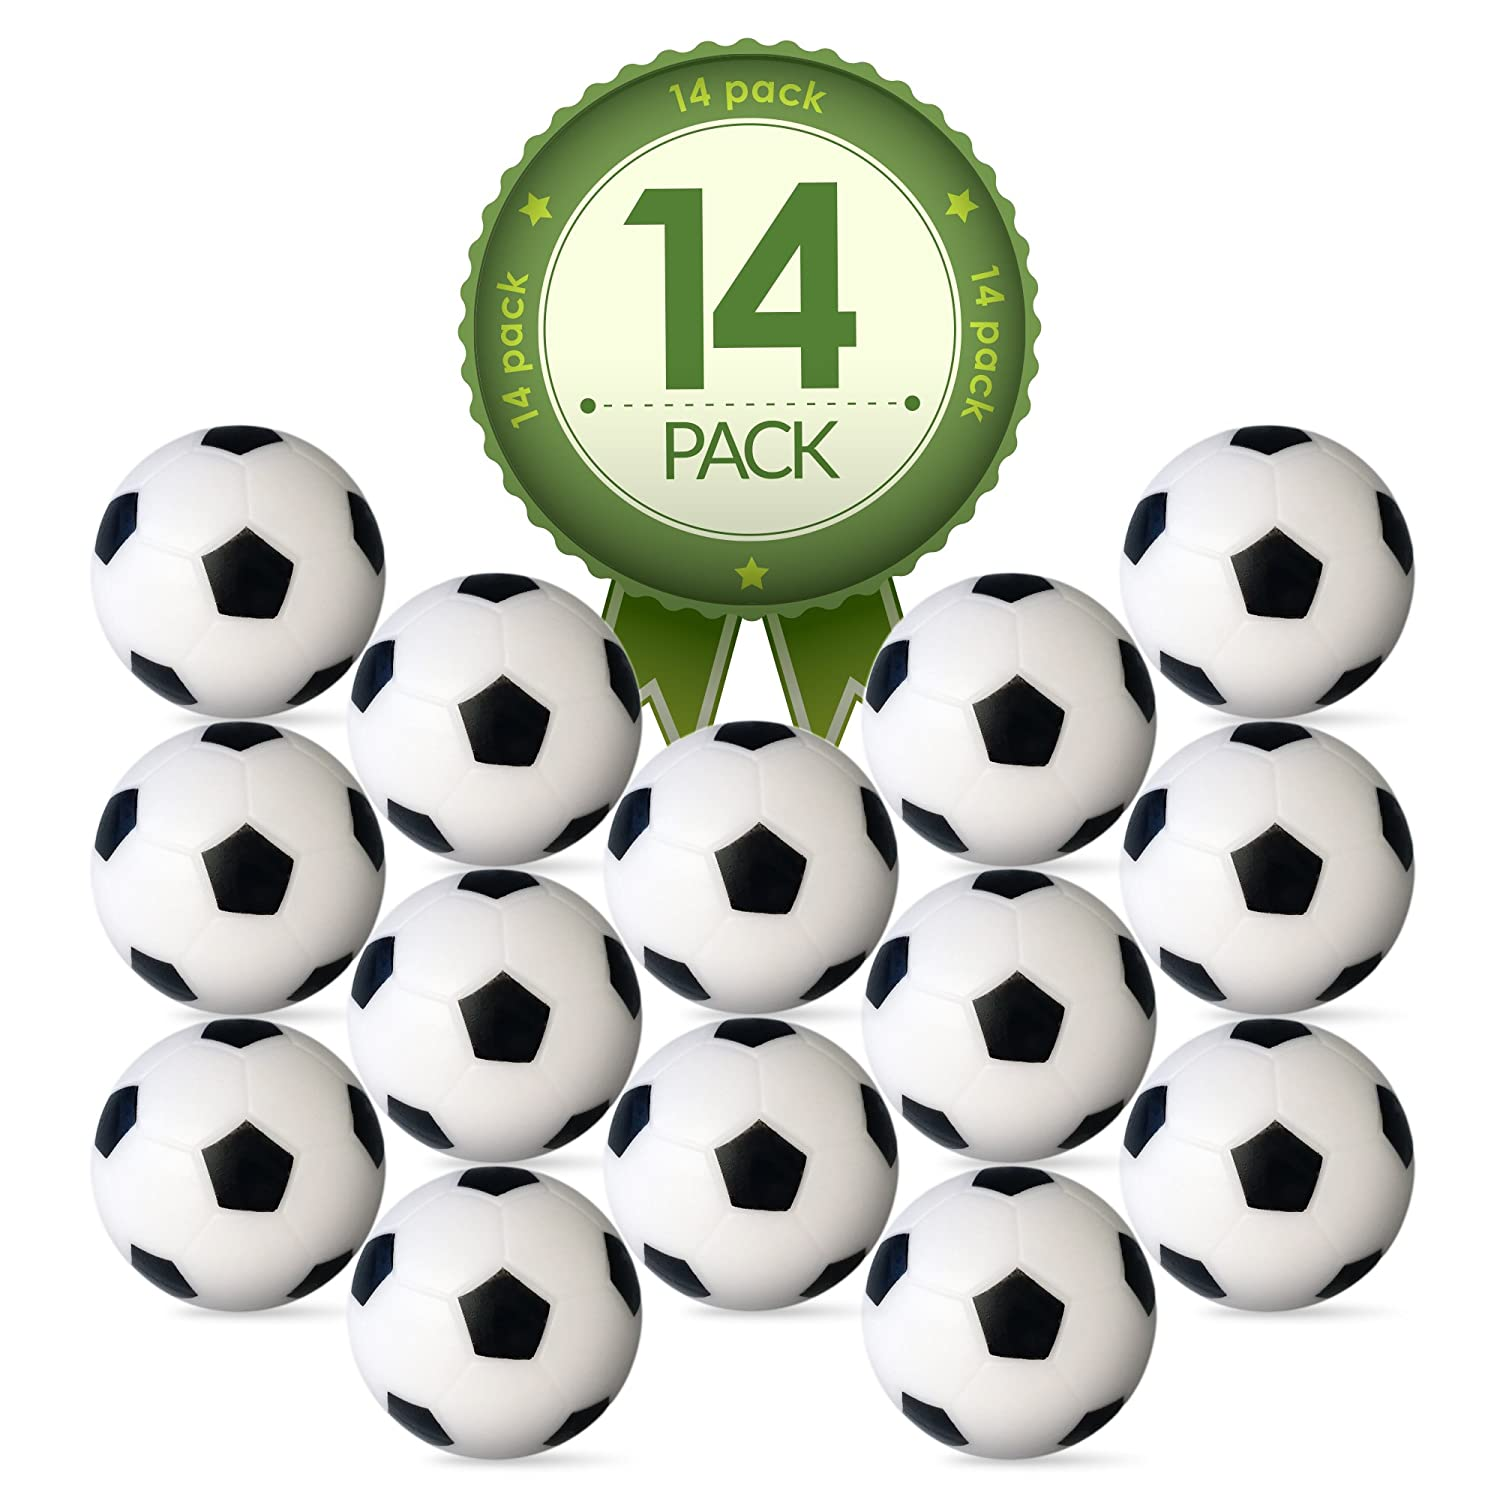 Amazon.com : Foosball Table Replacement Foosballs  14 Pack   36mm Game Table  Size   Black And White Tabletop Soccer Balls : Sports U0026 Outdoors